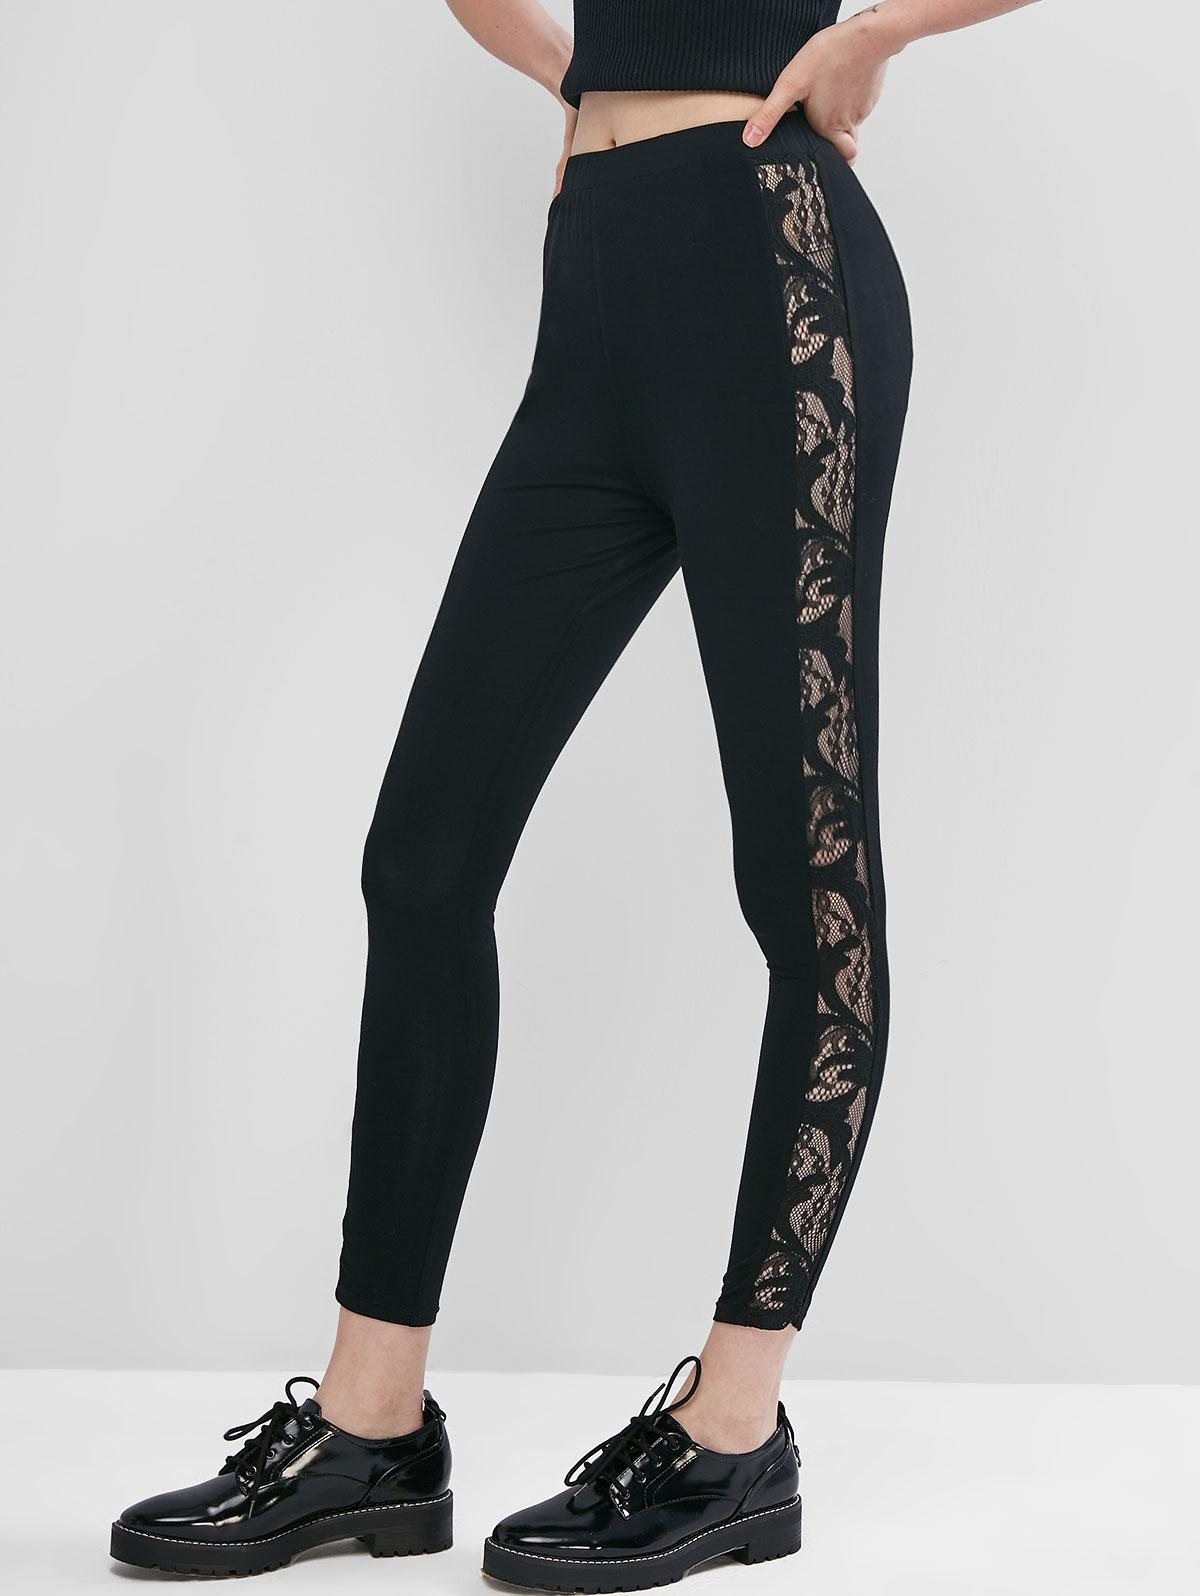 ZAFUL Pull On Lace Side High Waisted Leggings фото